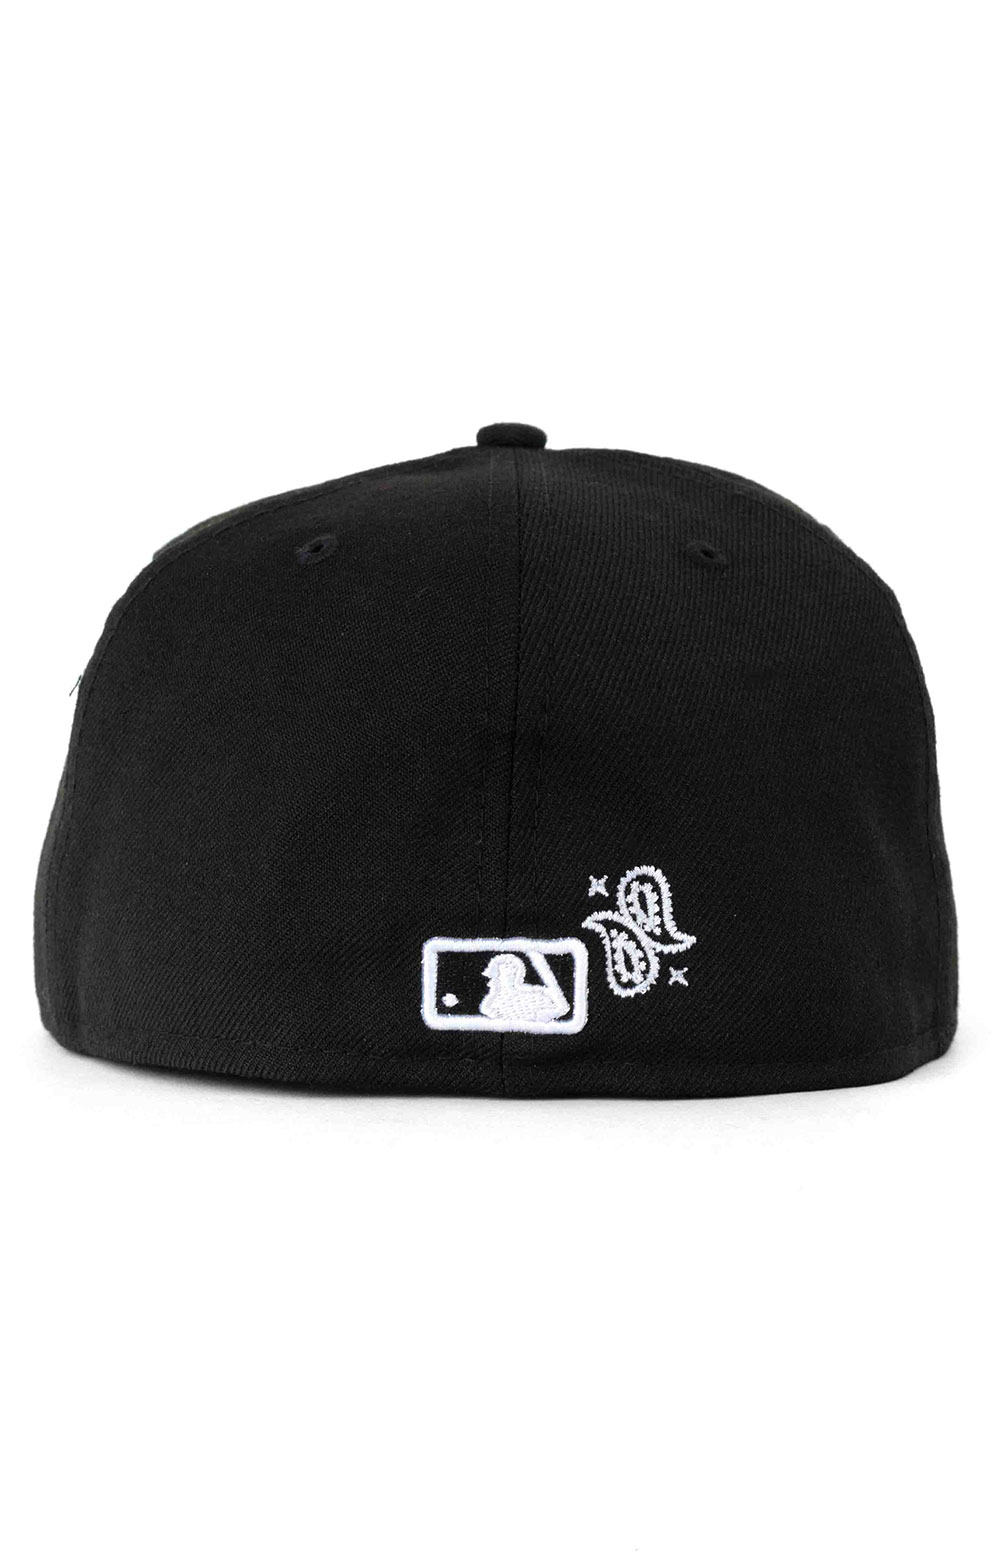 59Fifty New York Yankees Paisley Elements Fitted Hat - Black  4